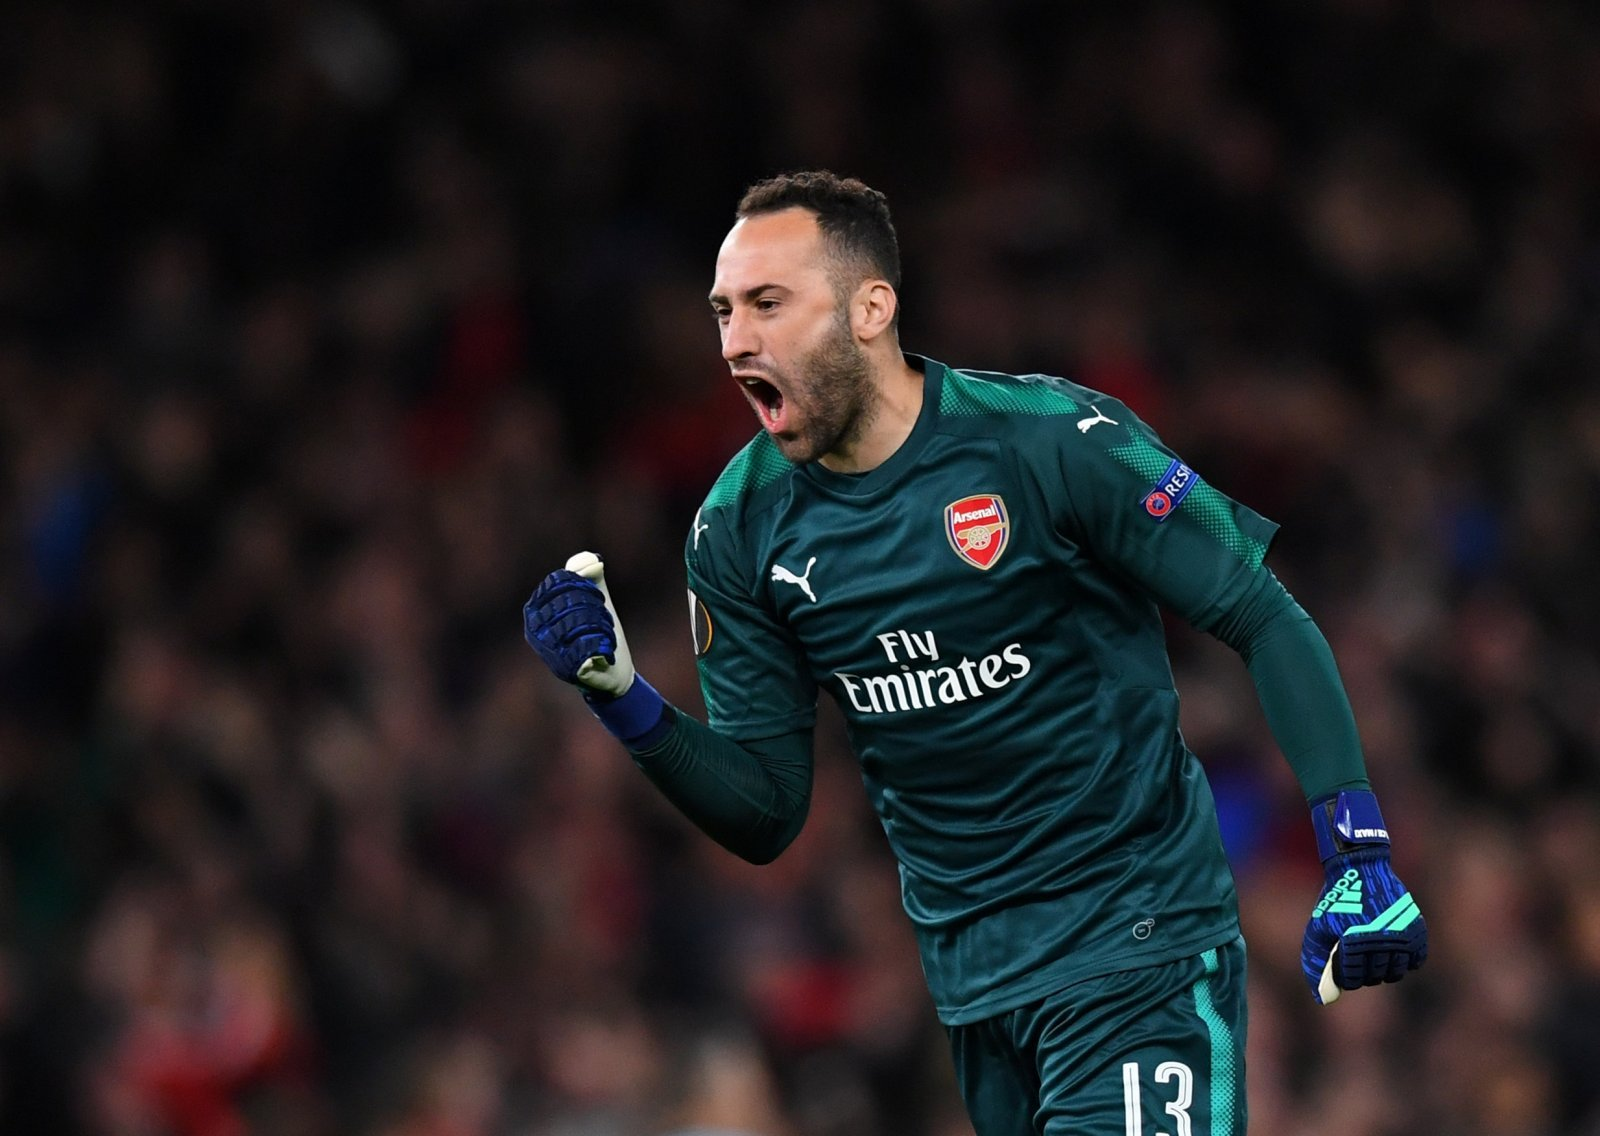 Arsenal: David Ospina seals permanent move to Napoli following loan-spell